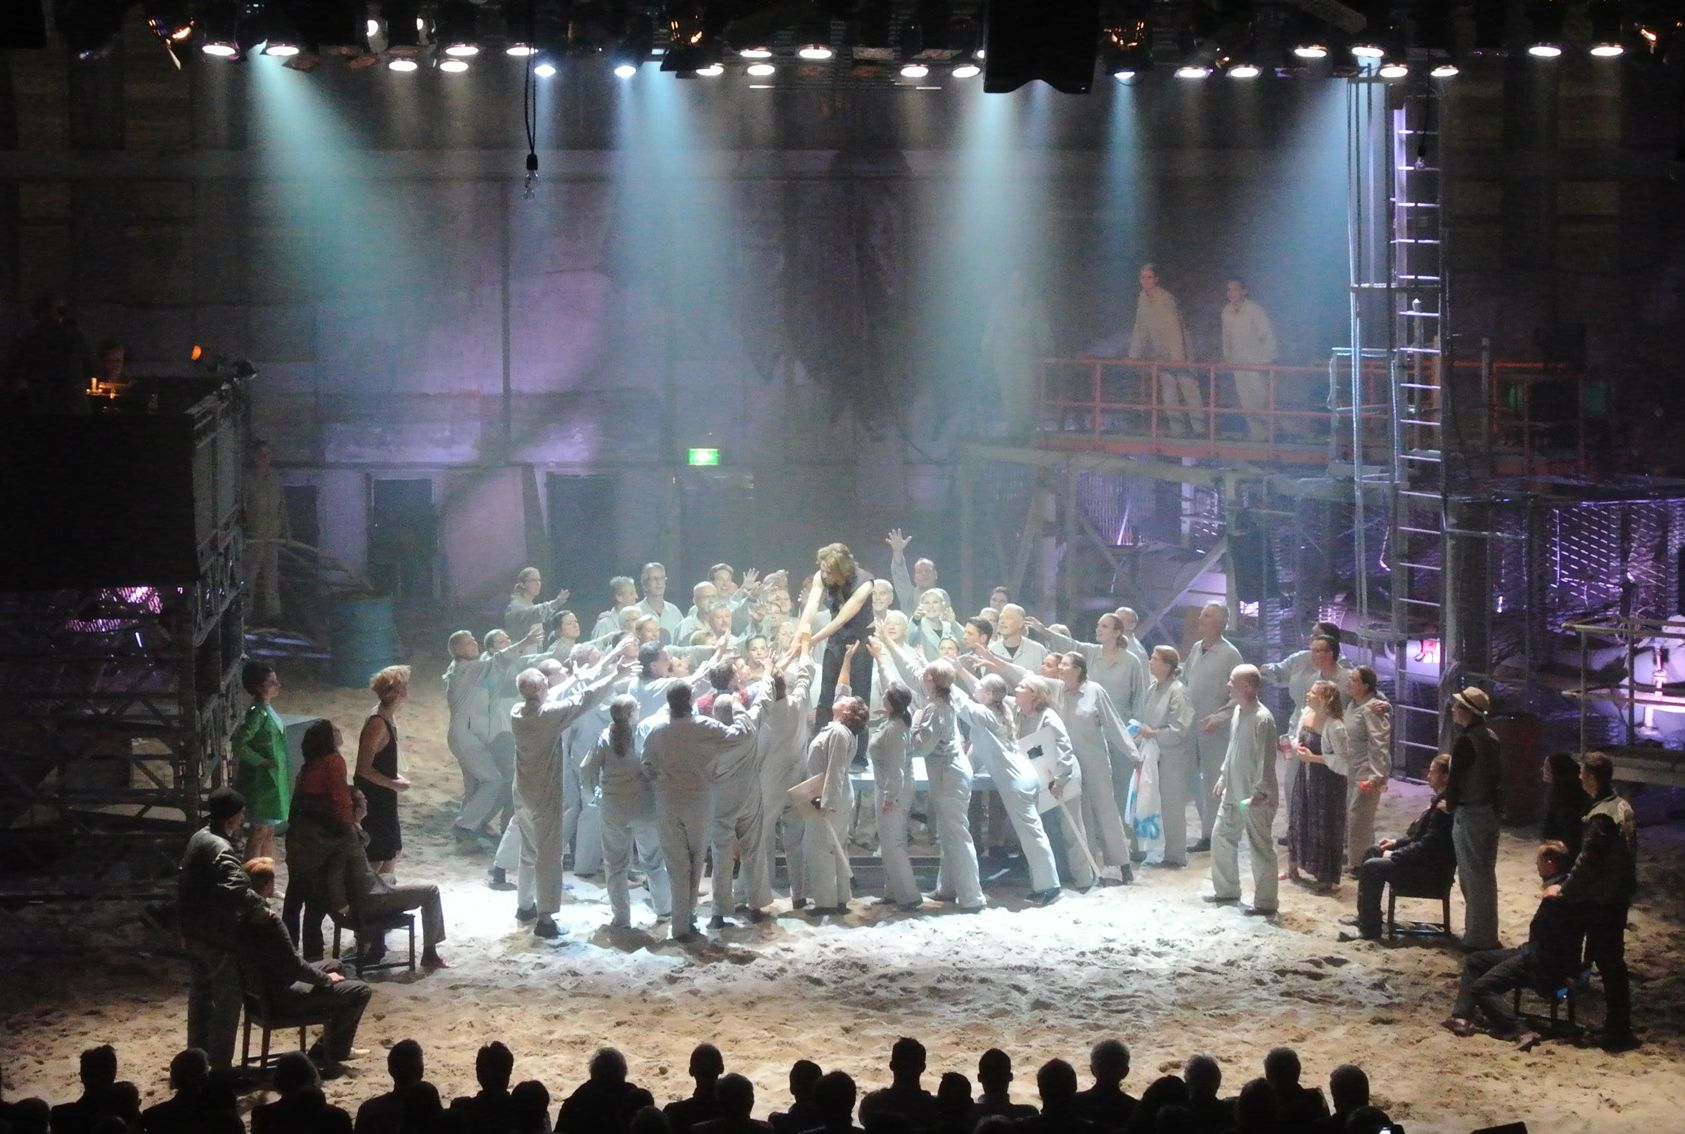 10 Things You Might Not Know About Jesus Christ Superstar